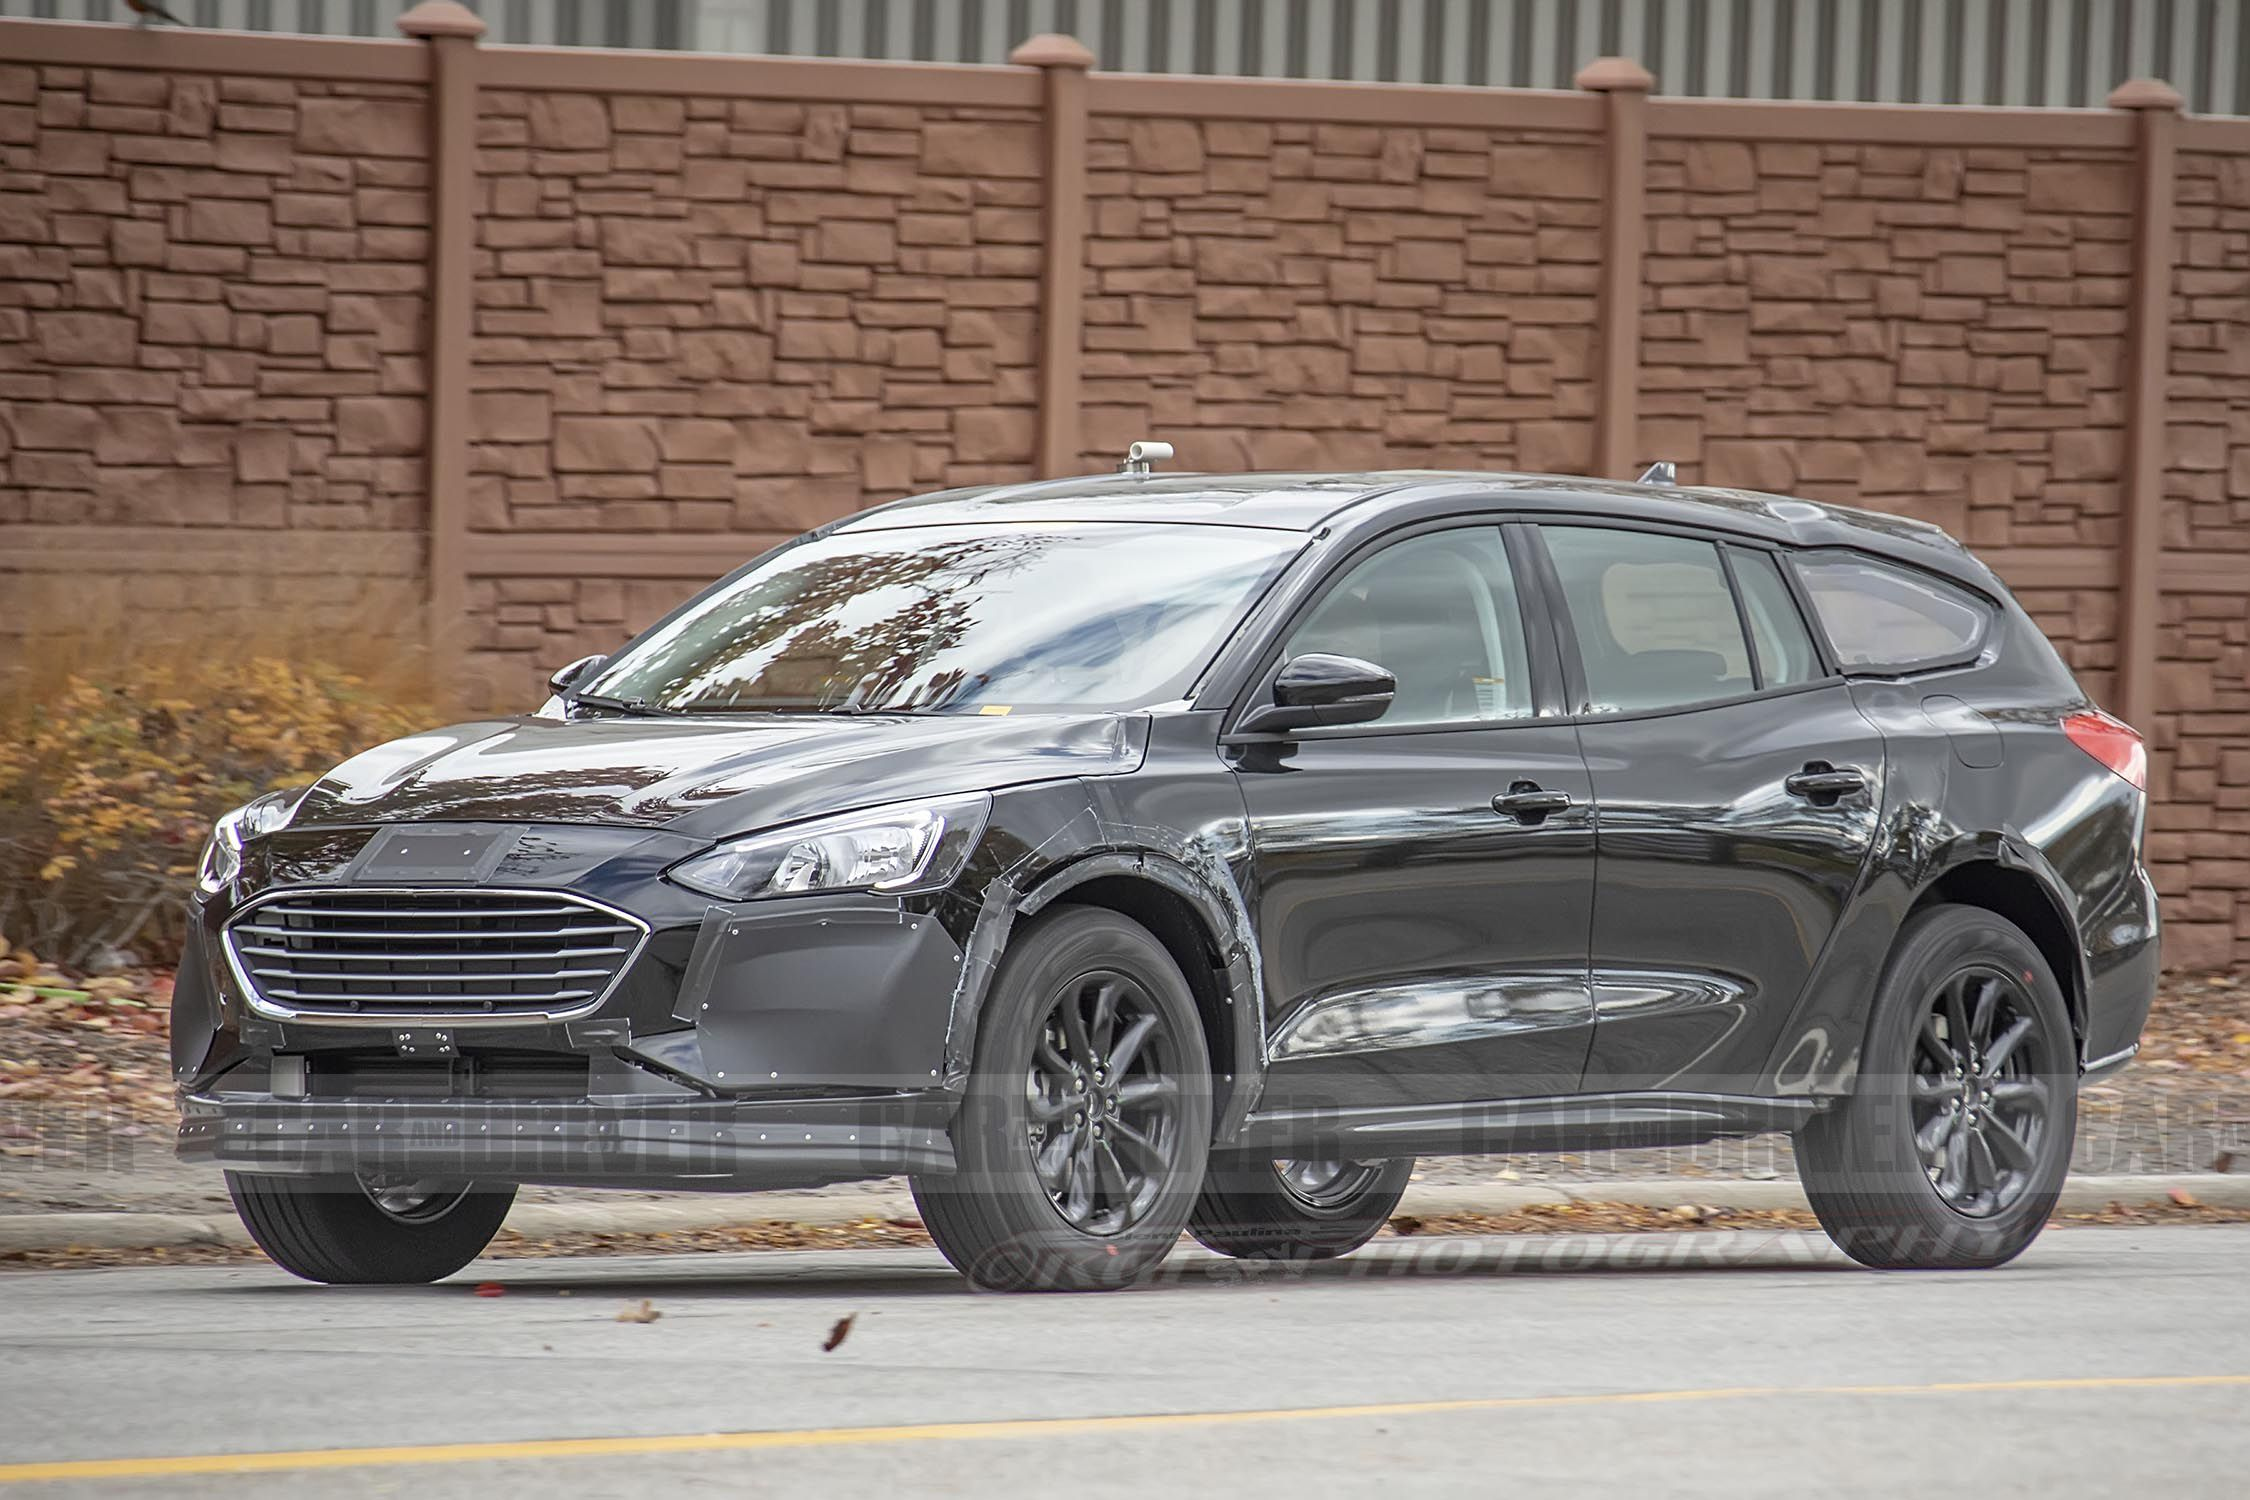 2021 ford fusion station wagon concept, release date